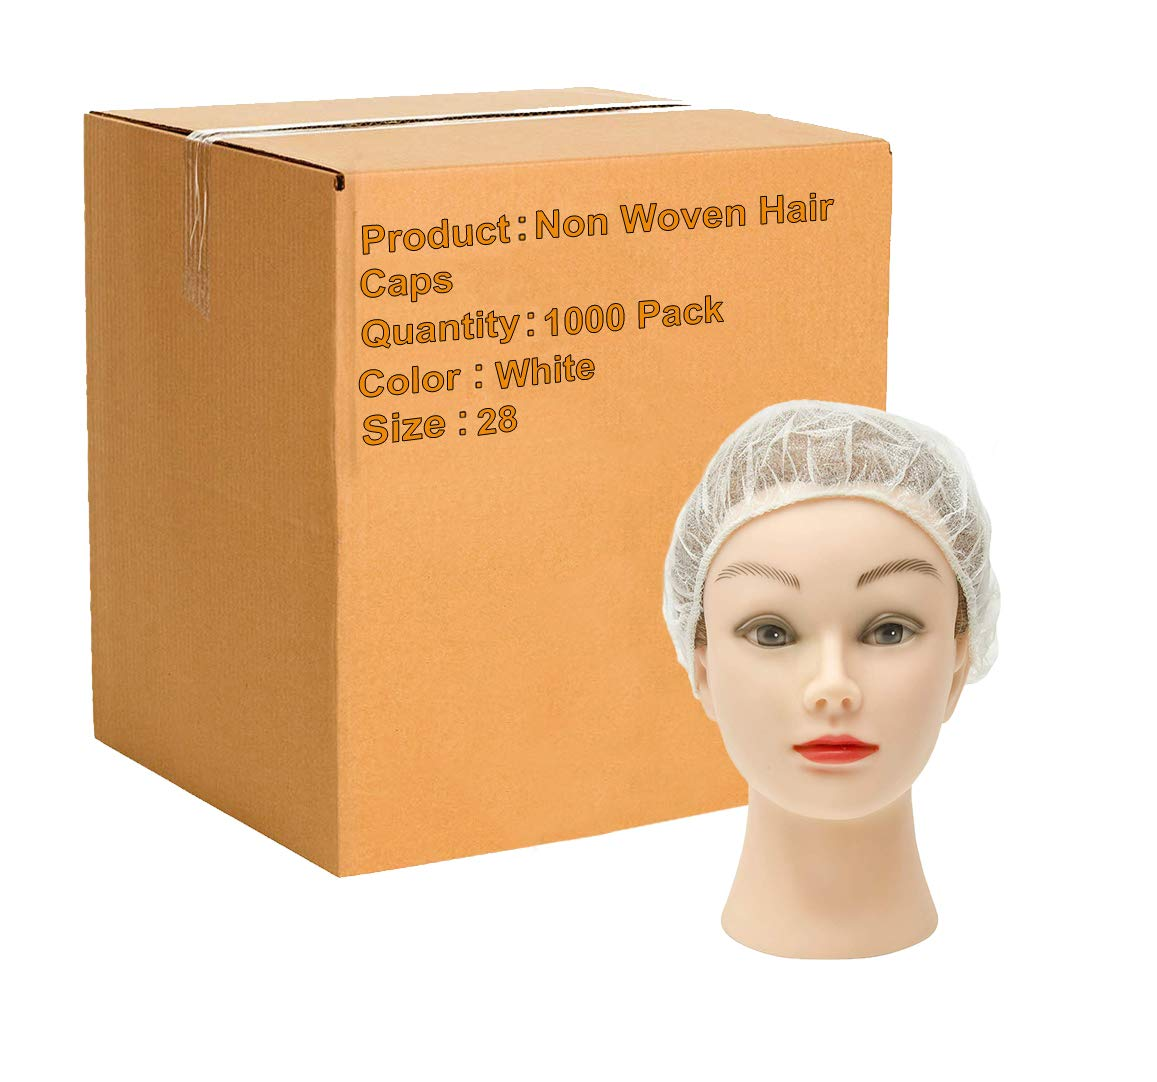 1000 Pack White Bouffant Caps 28''. Non Woven Hair Caps with elastic stretch band. Disposable Polypropylene Hats. Unisex Protective Hair Covers for food service, medical use. Breathable, Lightweight. by ABC Pack & Supply